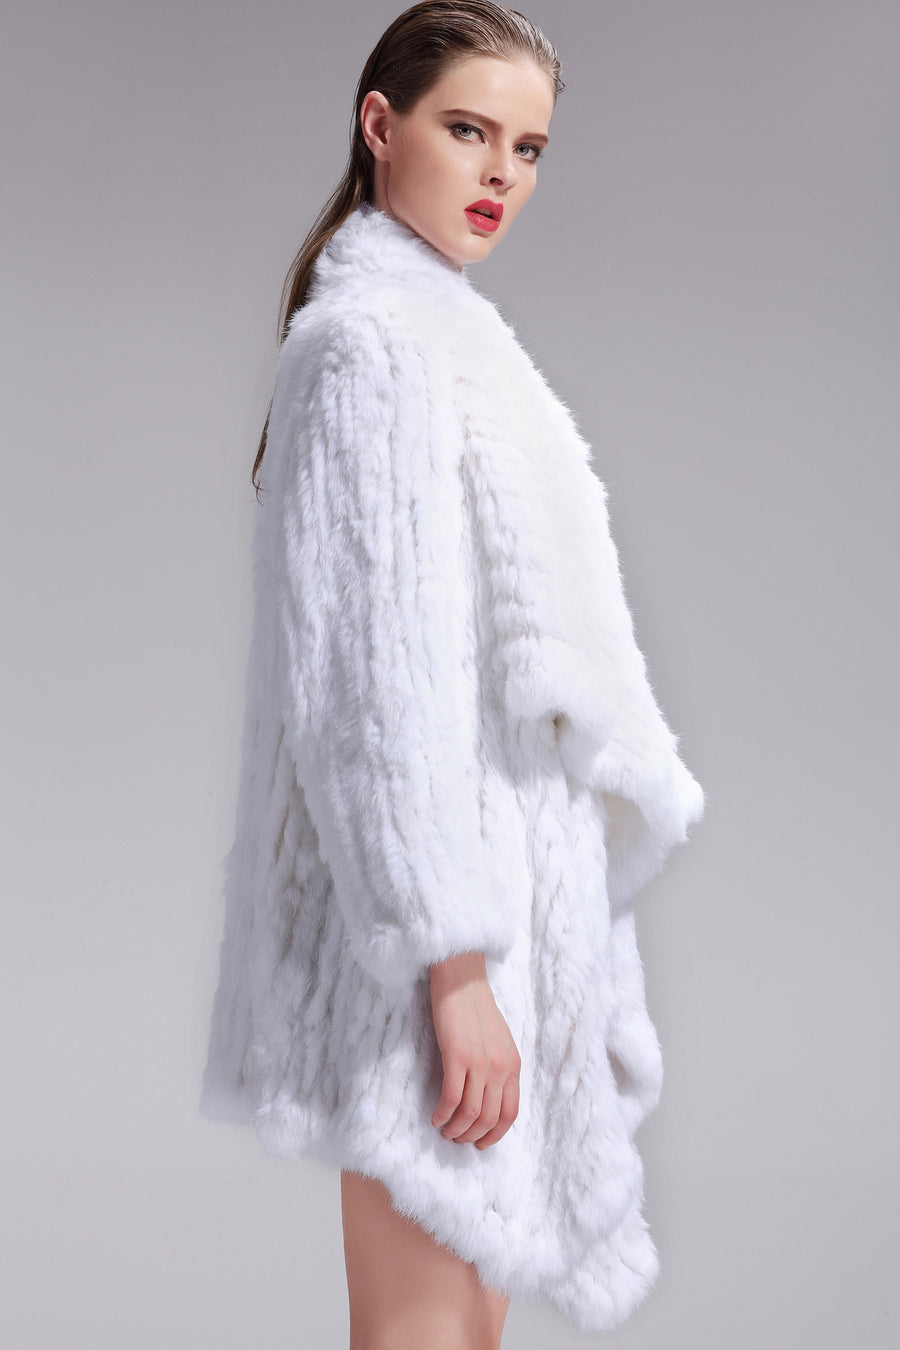 Klara White Rabbit Fur Jacket, Rabbit Fur Clothing - KITTY KAT,